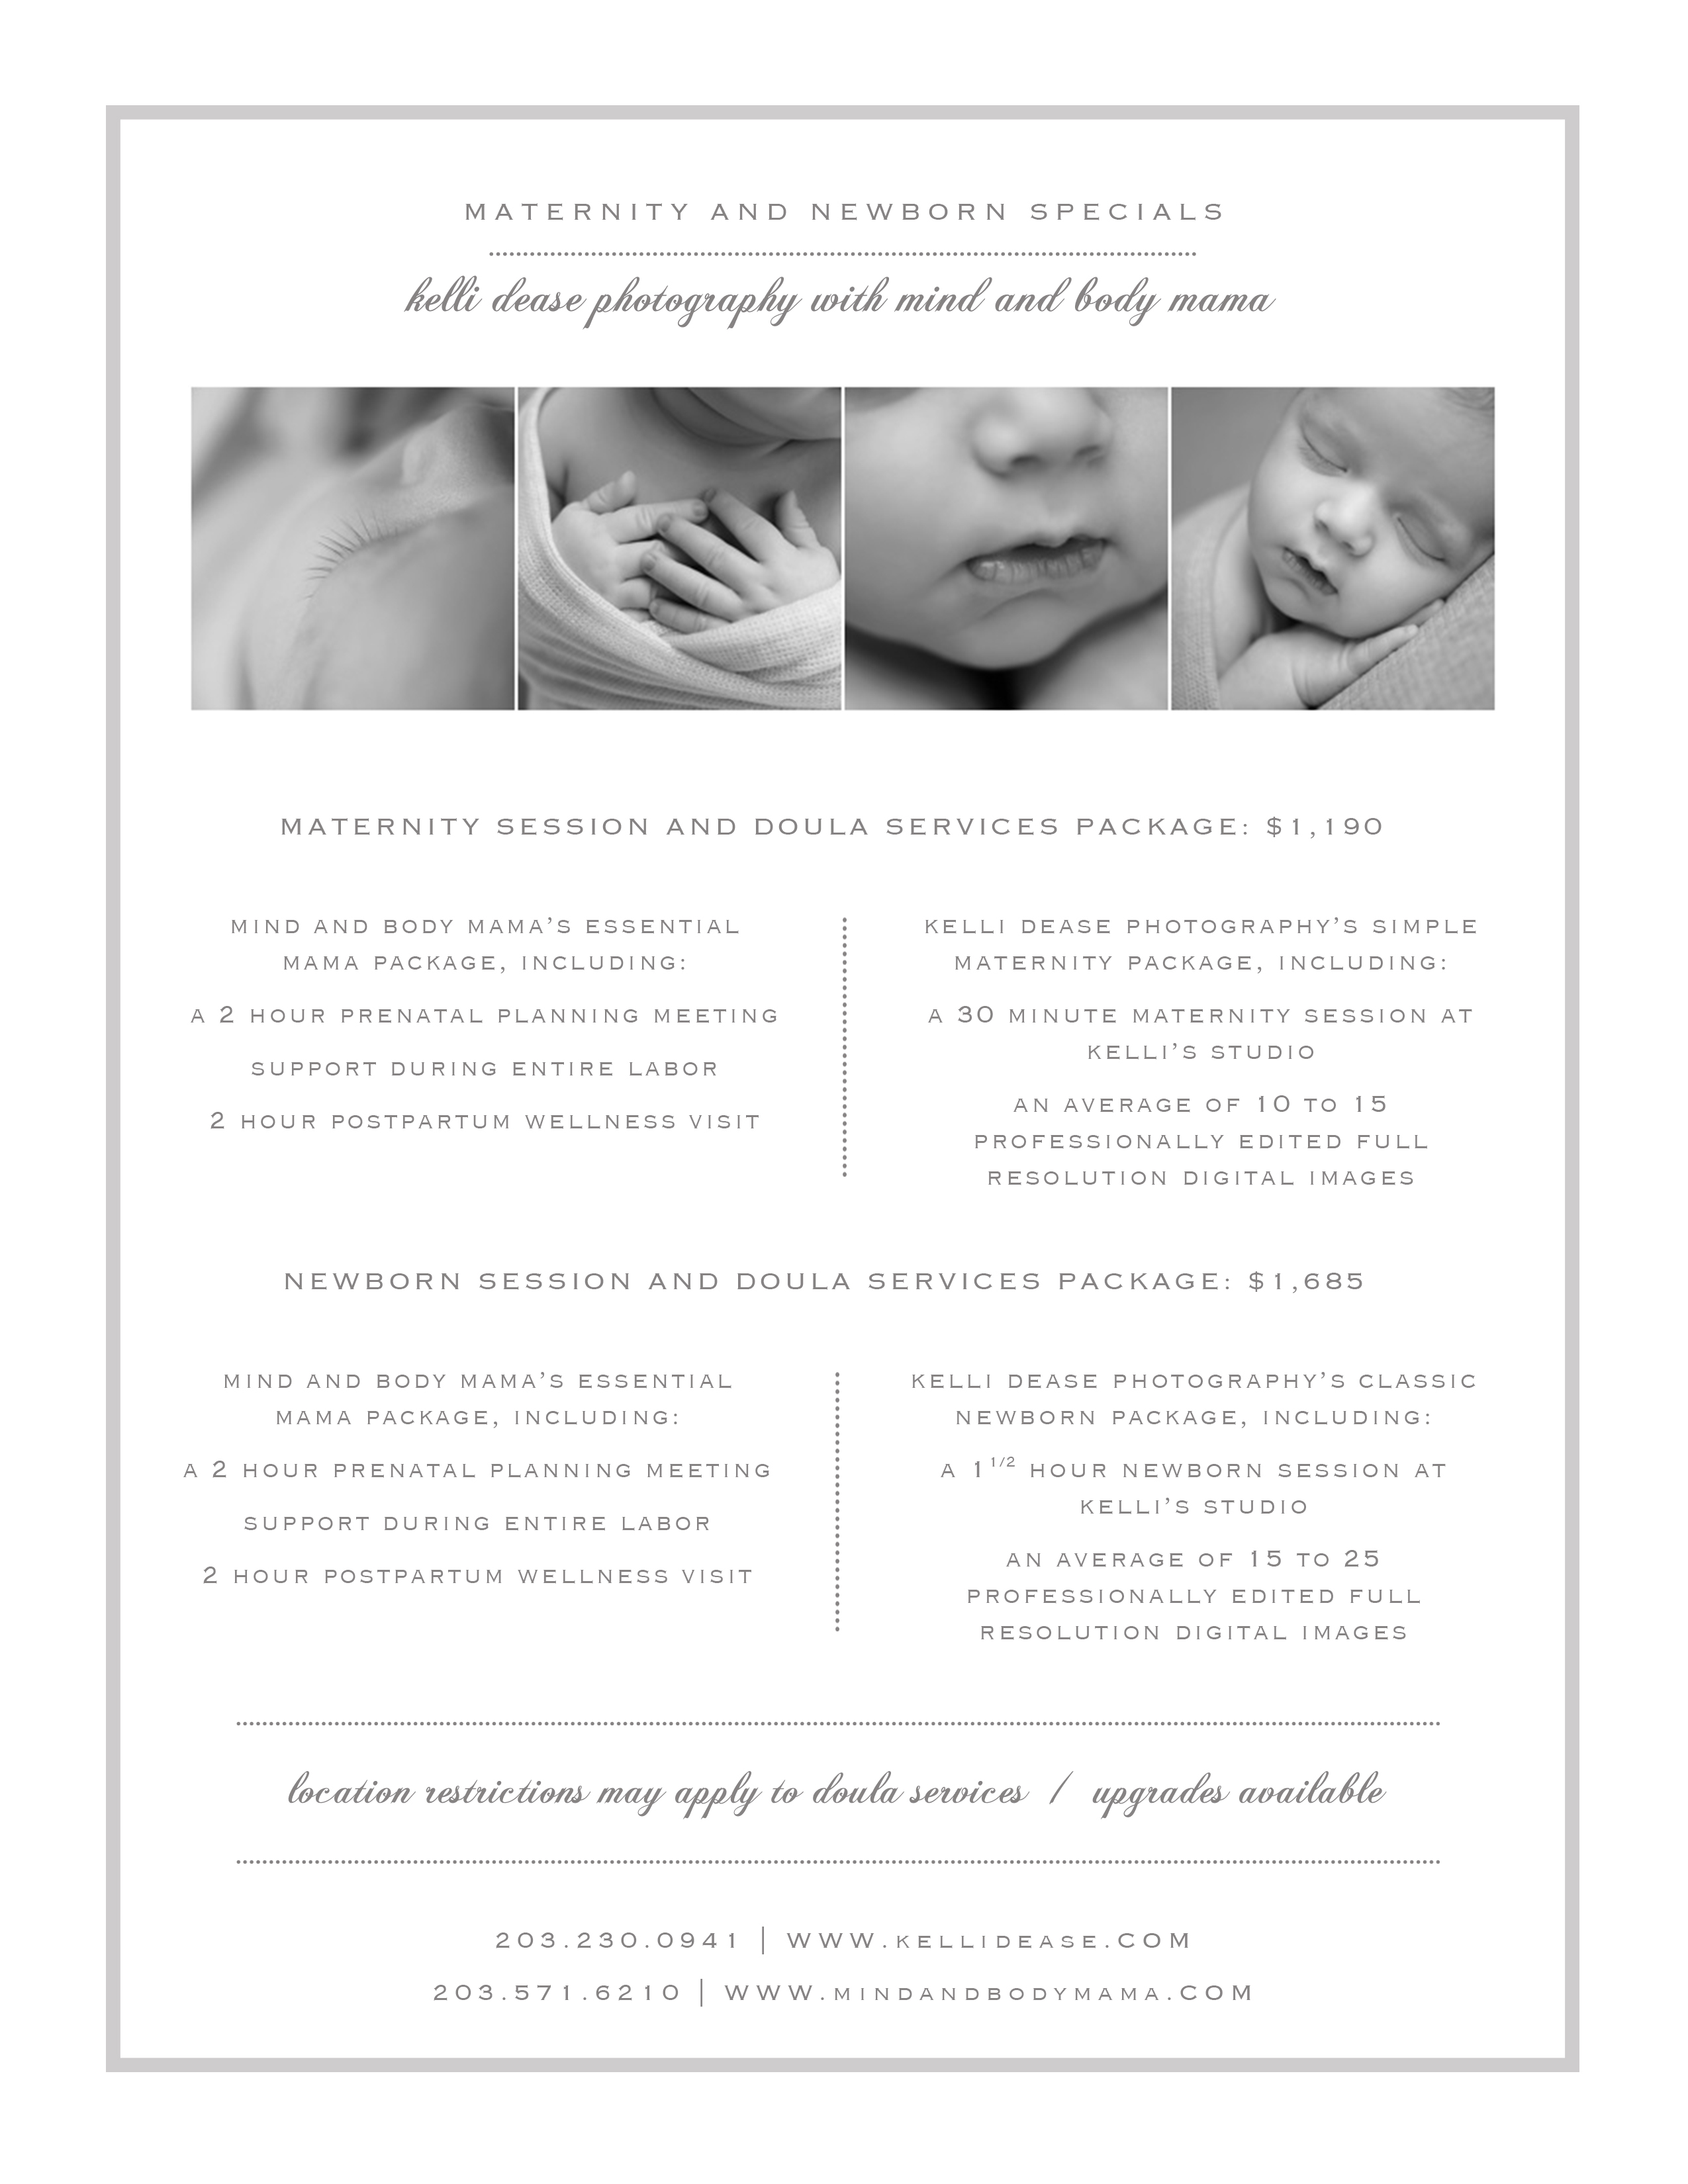 Maternity and newborn photography and doula services special package.